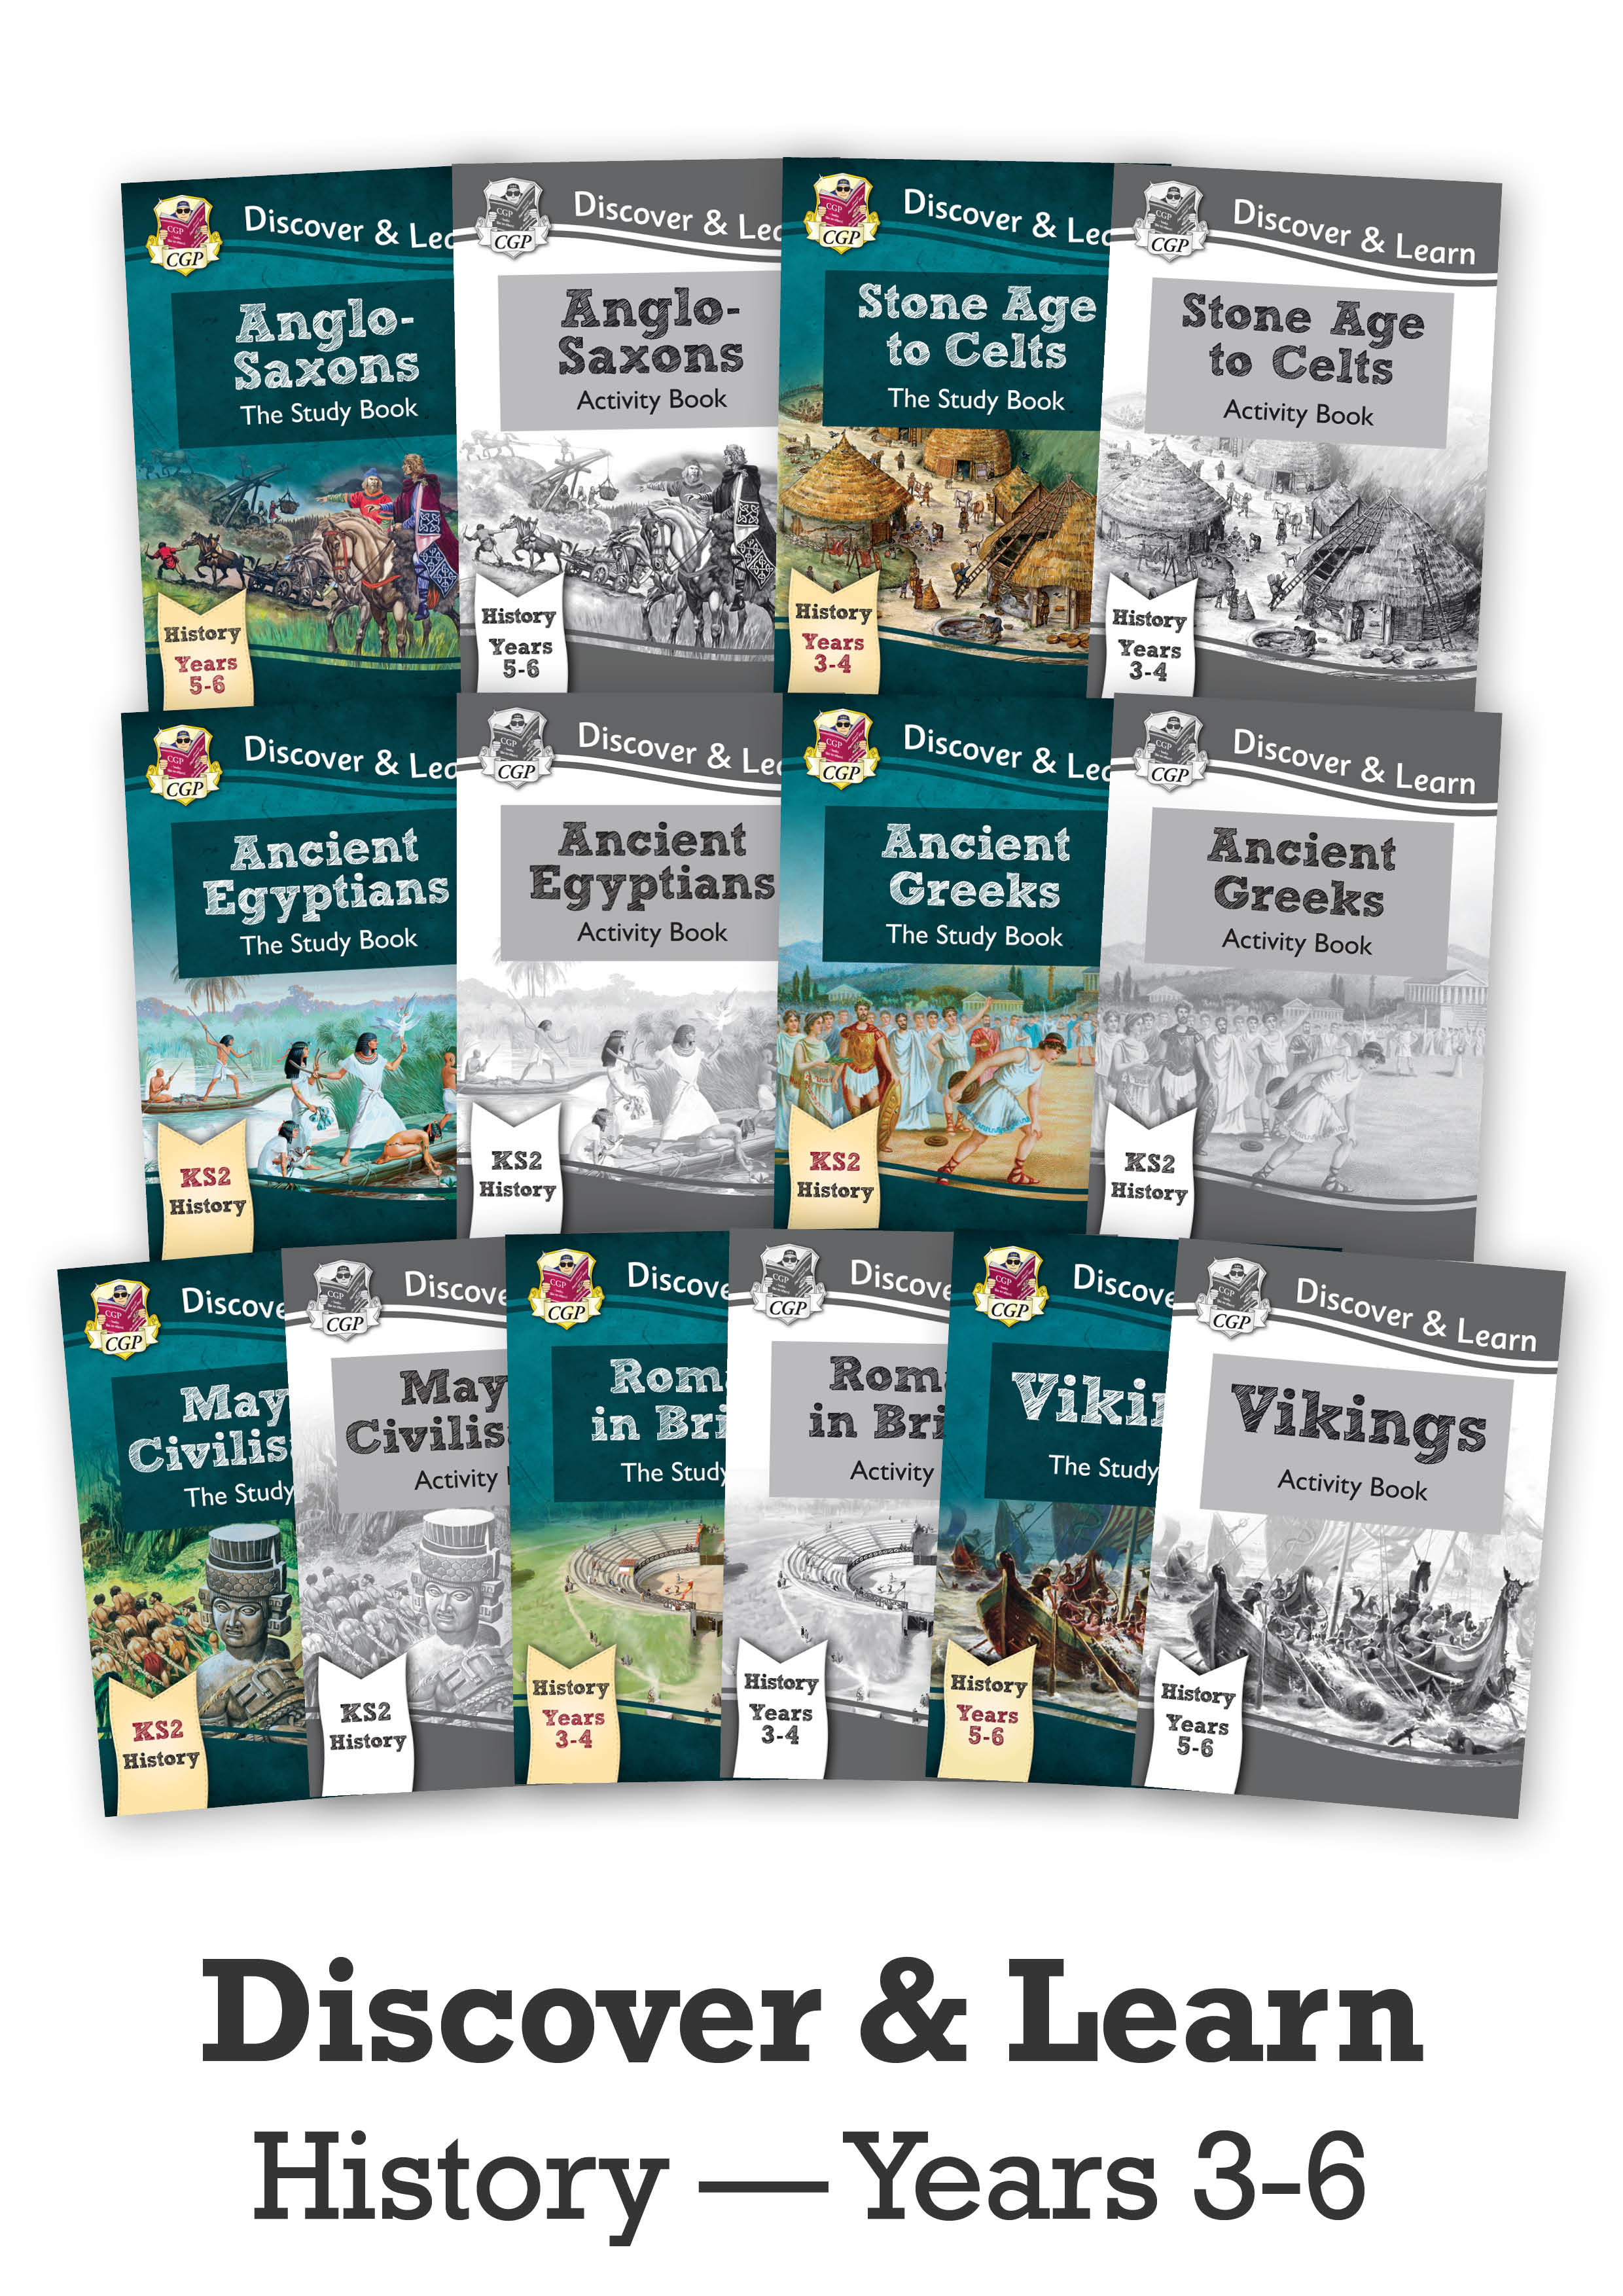 HMEB21 - KS2 Discover & Learn: History - Complete 14 Book Bundle (for years 3 - 6)